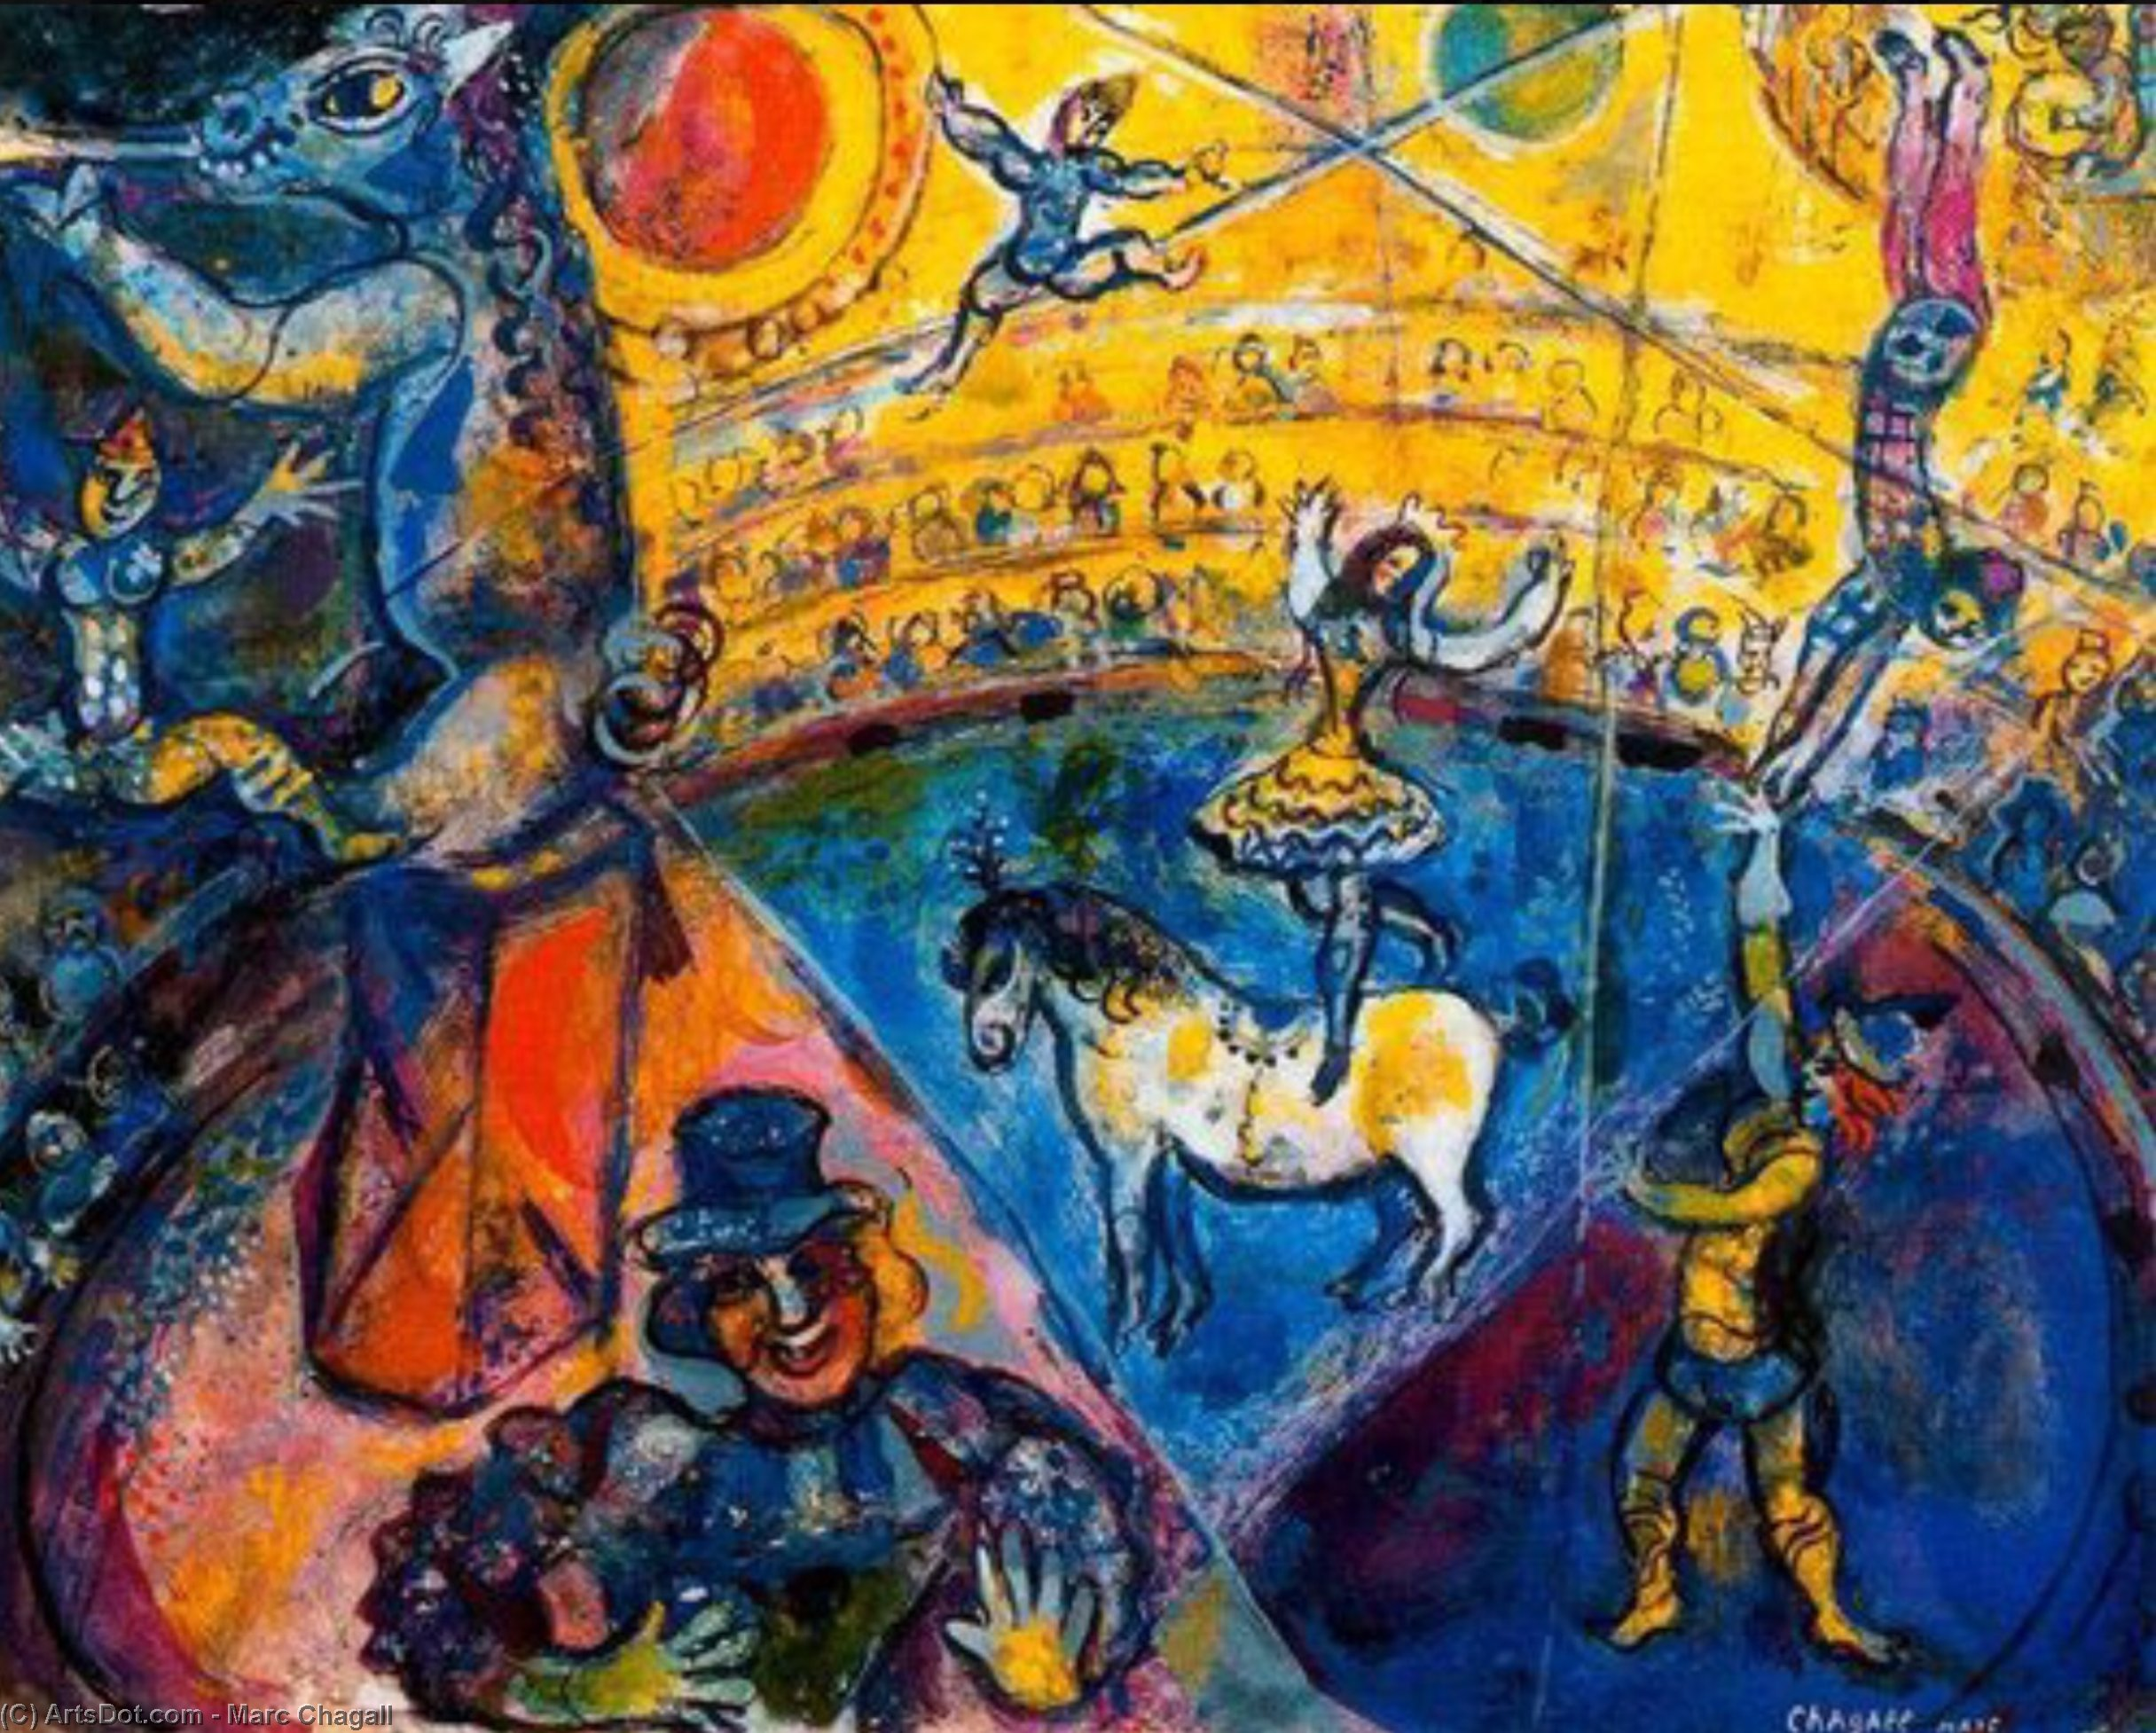 [Image:  Dimensioni di questa immagine , by  Marc Chagall (1887-1985), 1950. Courtesy of wikioo.org, the Internet Collection of Fine Art, http://wikioo.org/it/paintings.php?refarticle=8XYH5P&titlepainting=The%20circus&artistname=Marc%20Chagall ]